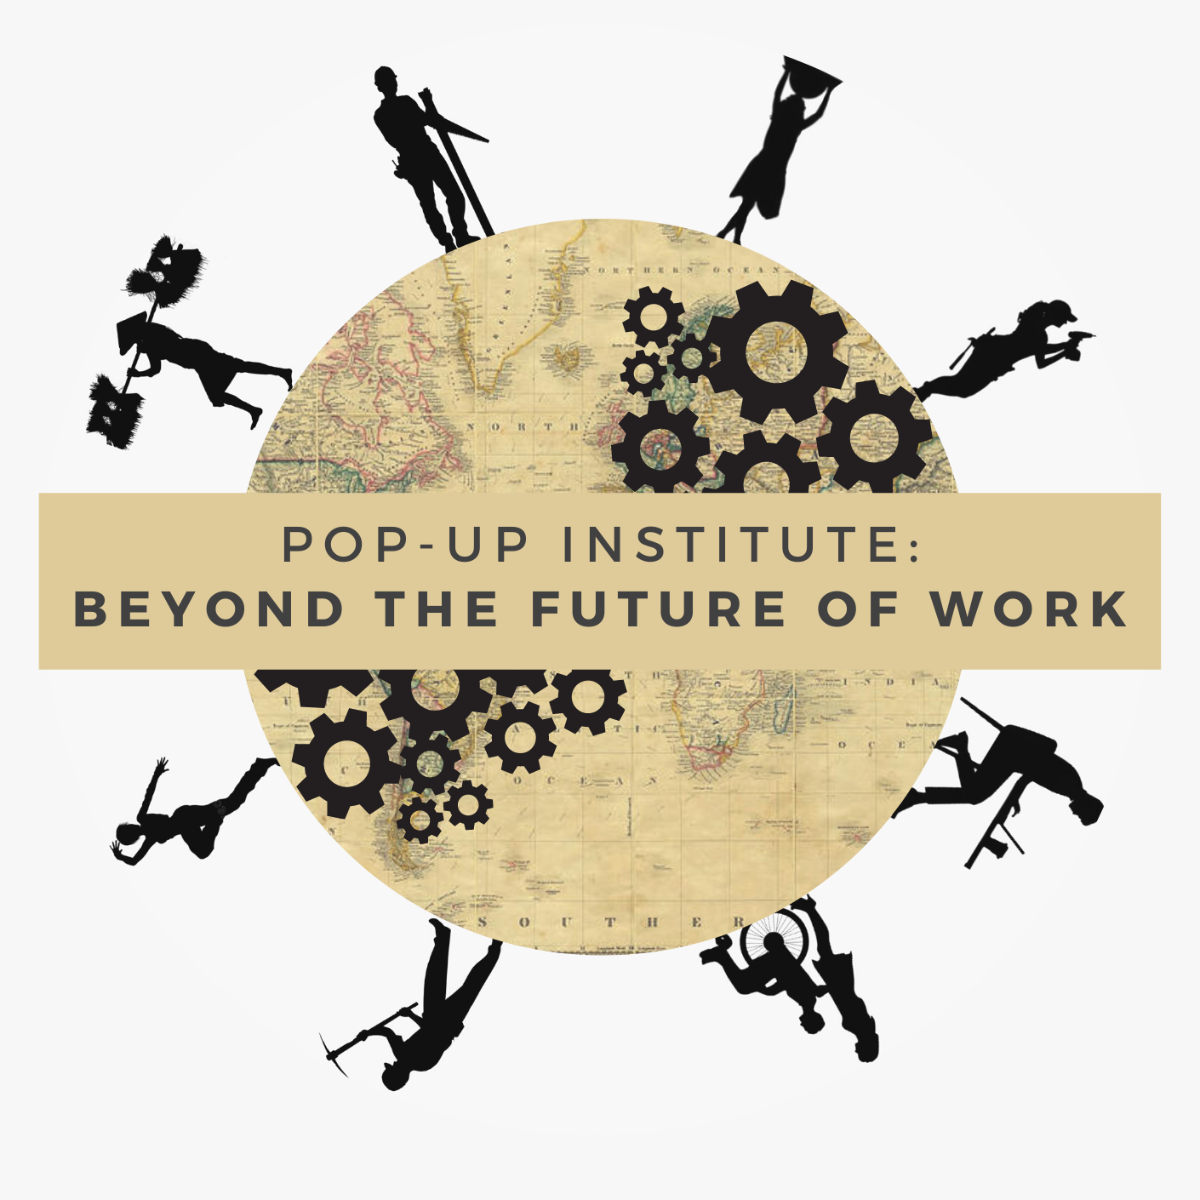 pop-up-institutes-beyond-the-future-of-work